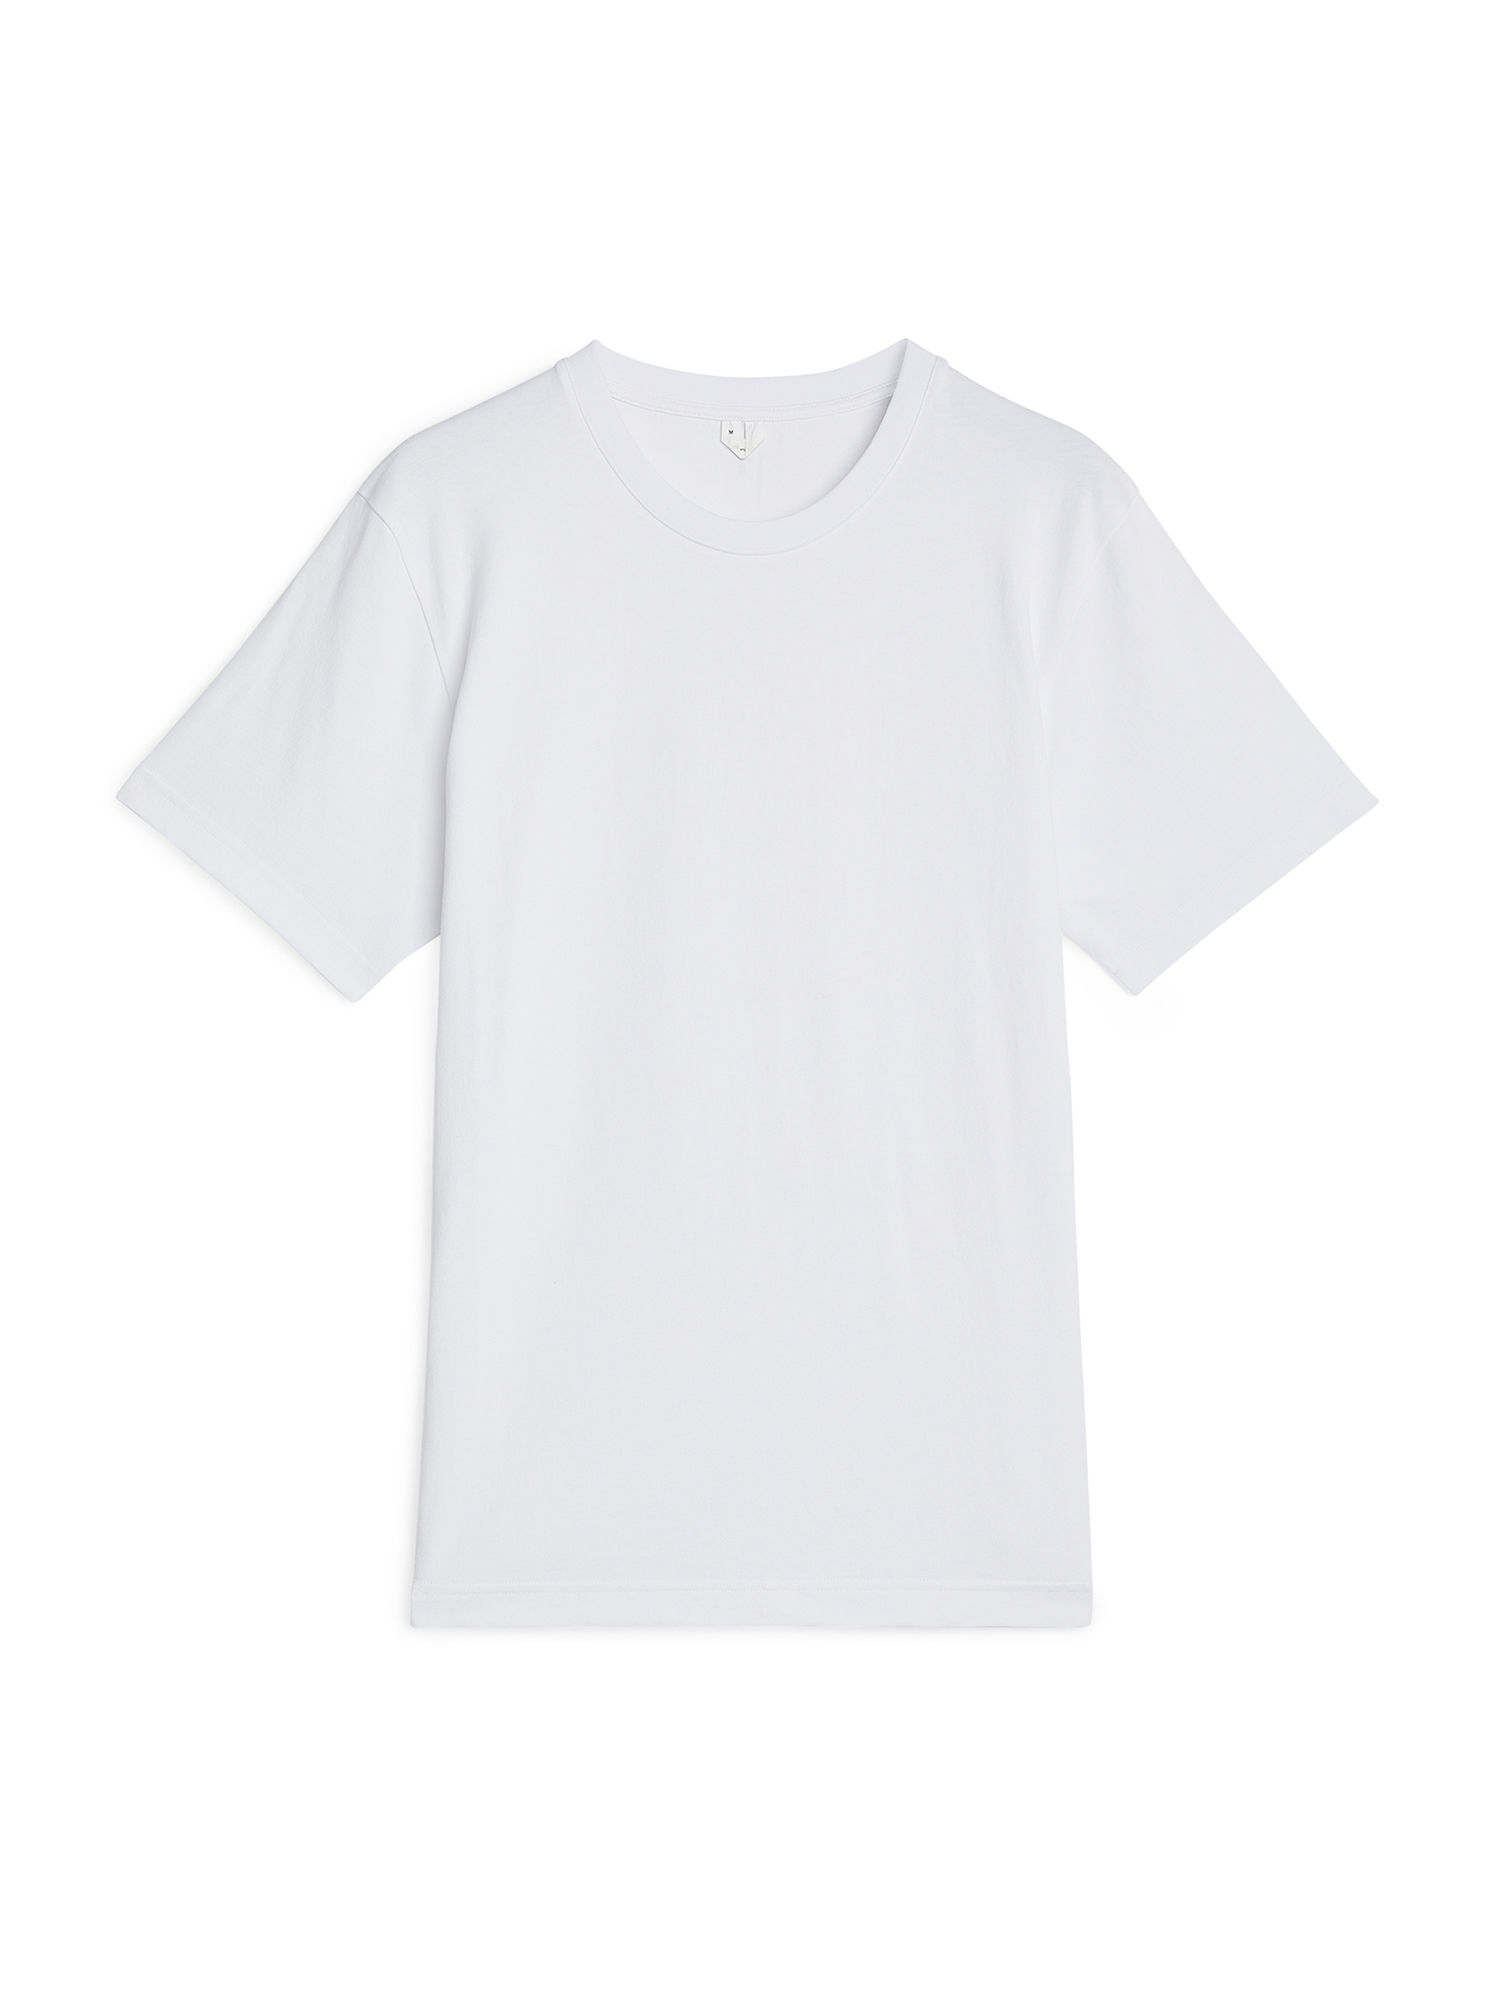 Fabric Swatch image of Arket 220 gsm t-shirt in white